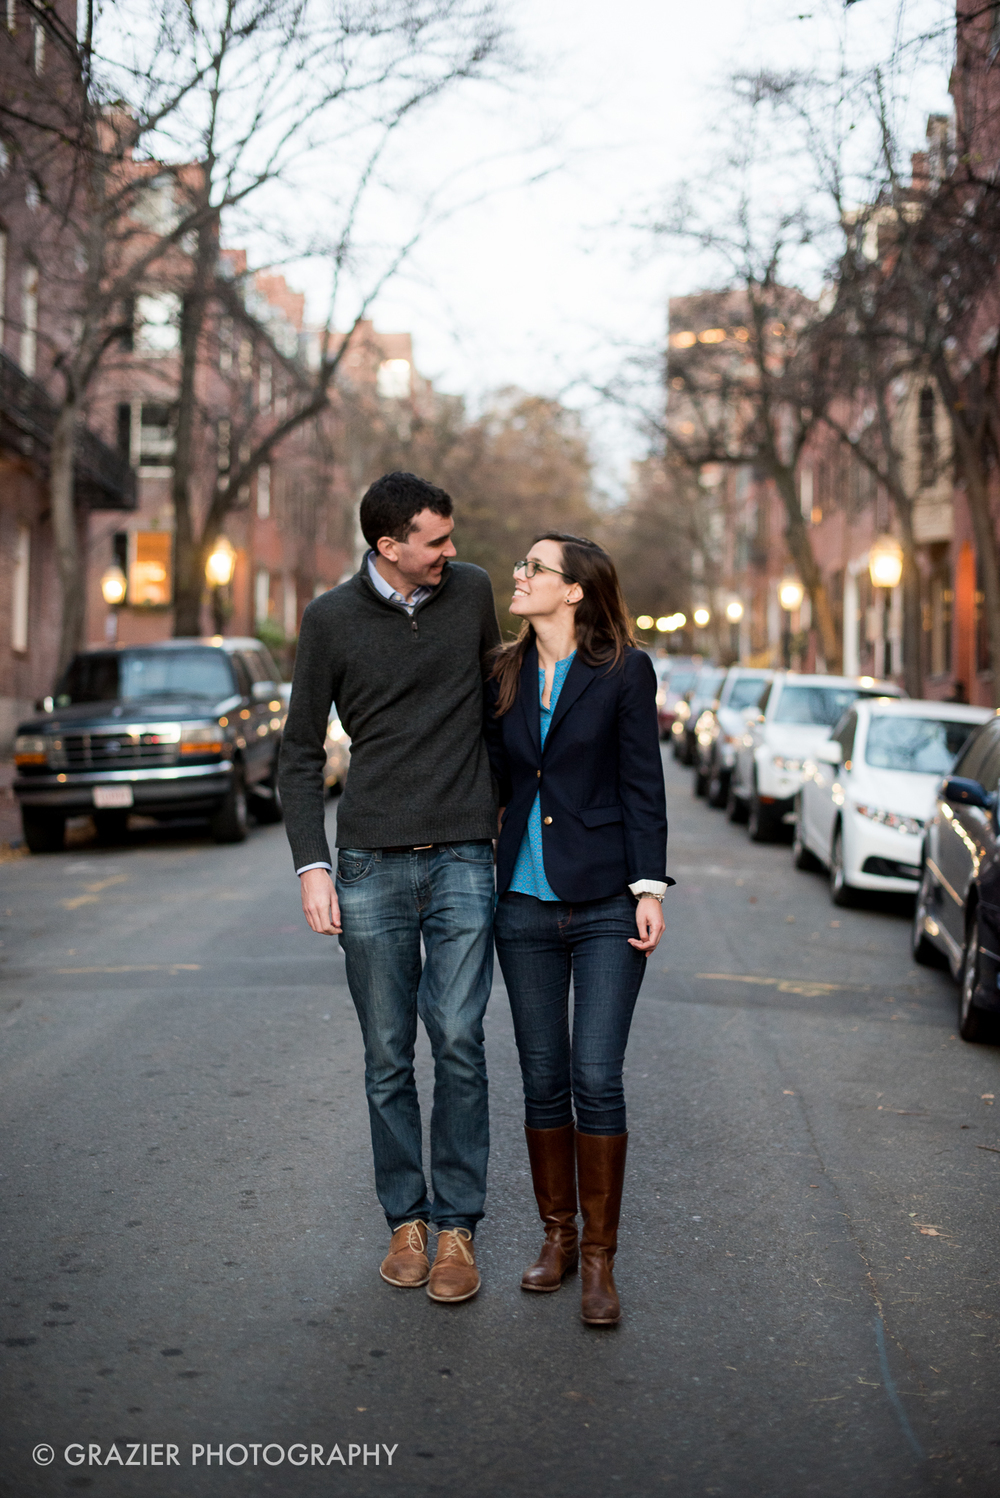 Grazier_Photography_Boston_Engagement_160430_166.jpg